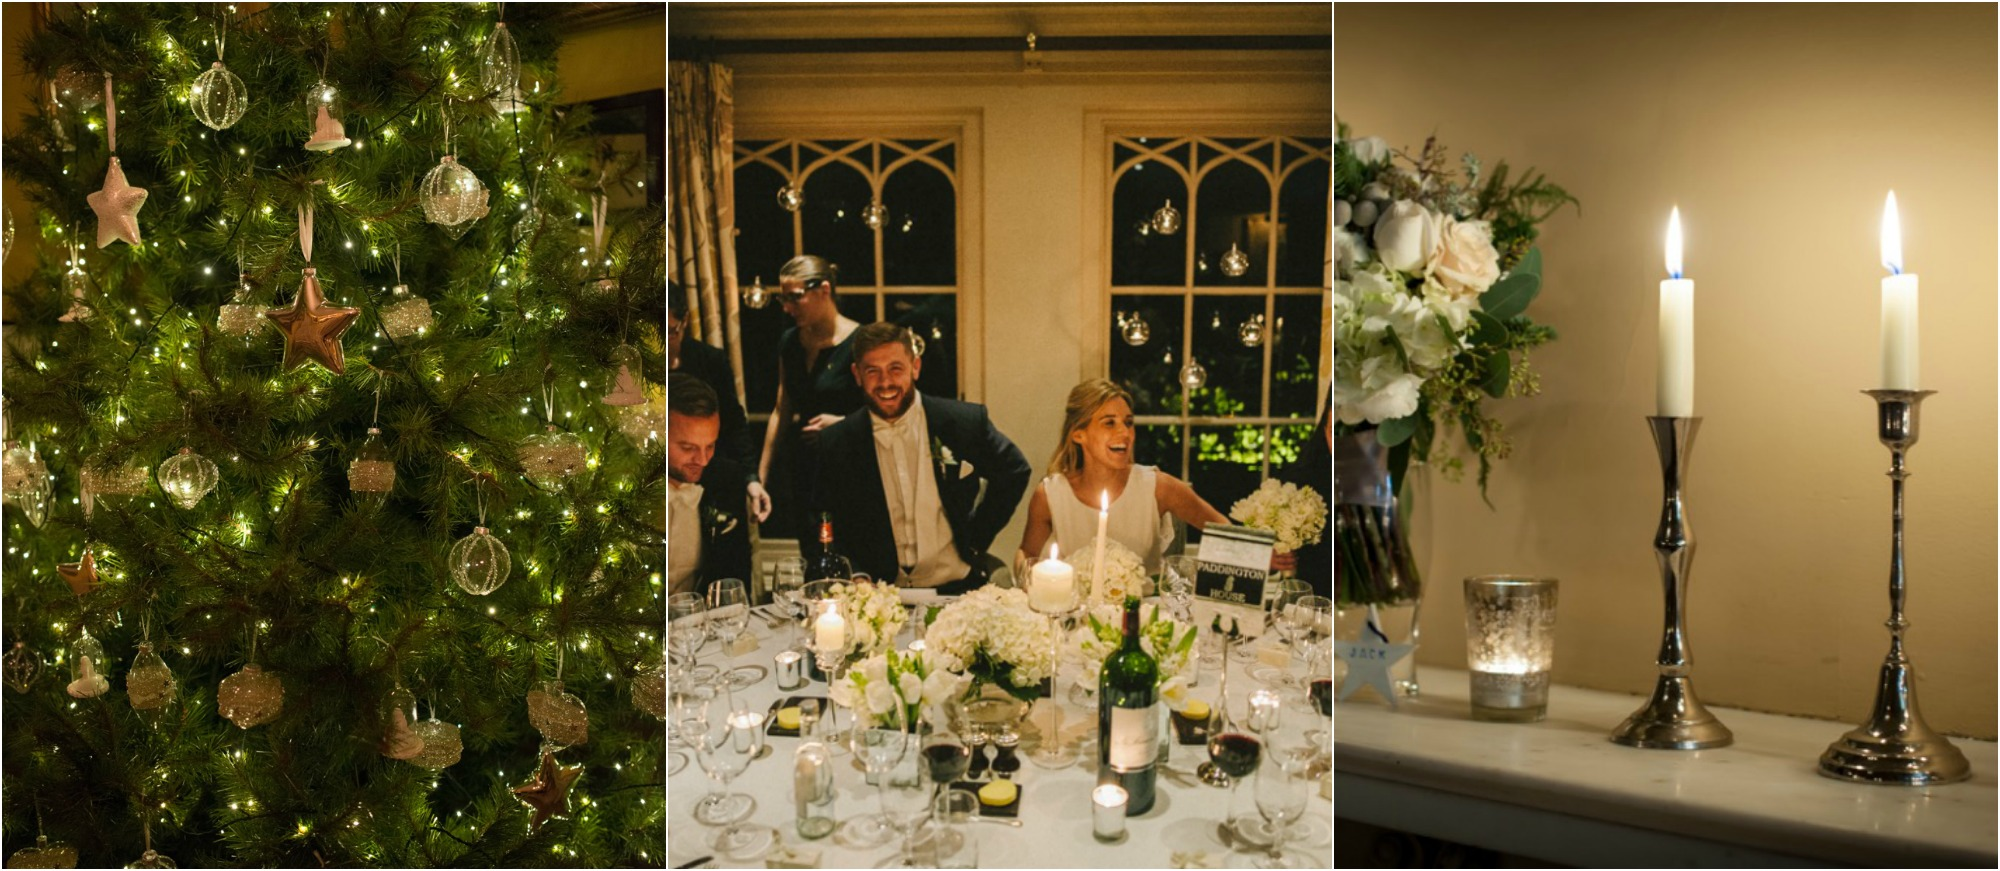 top tips for a winter wedding